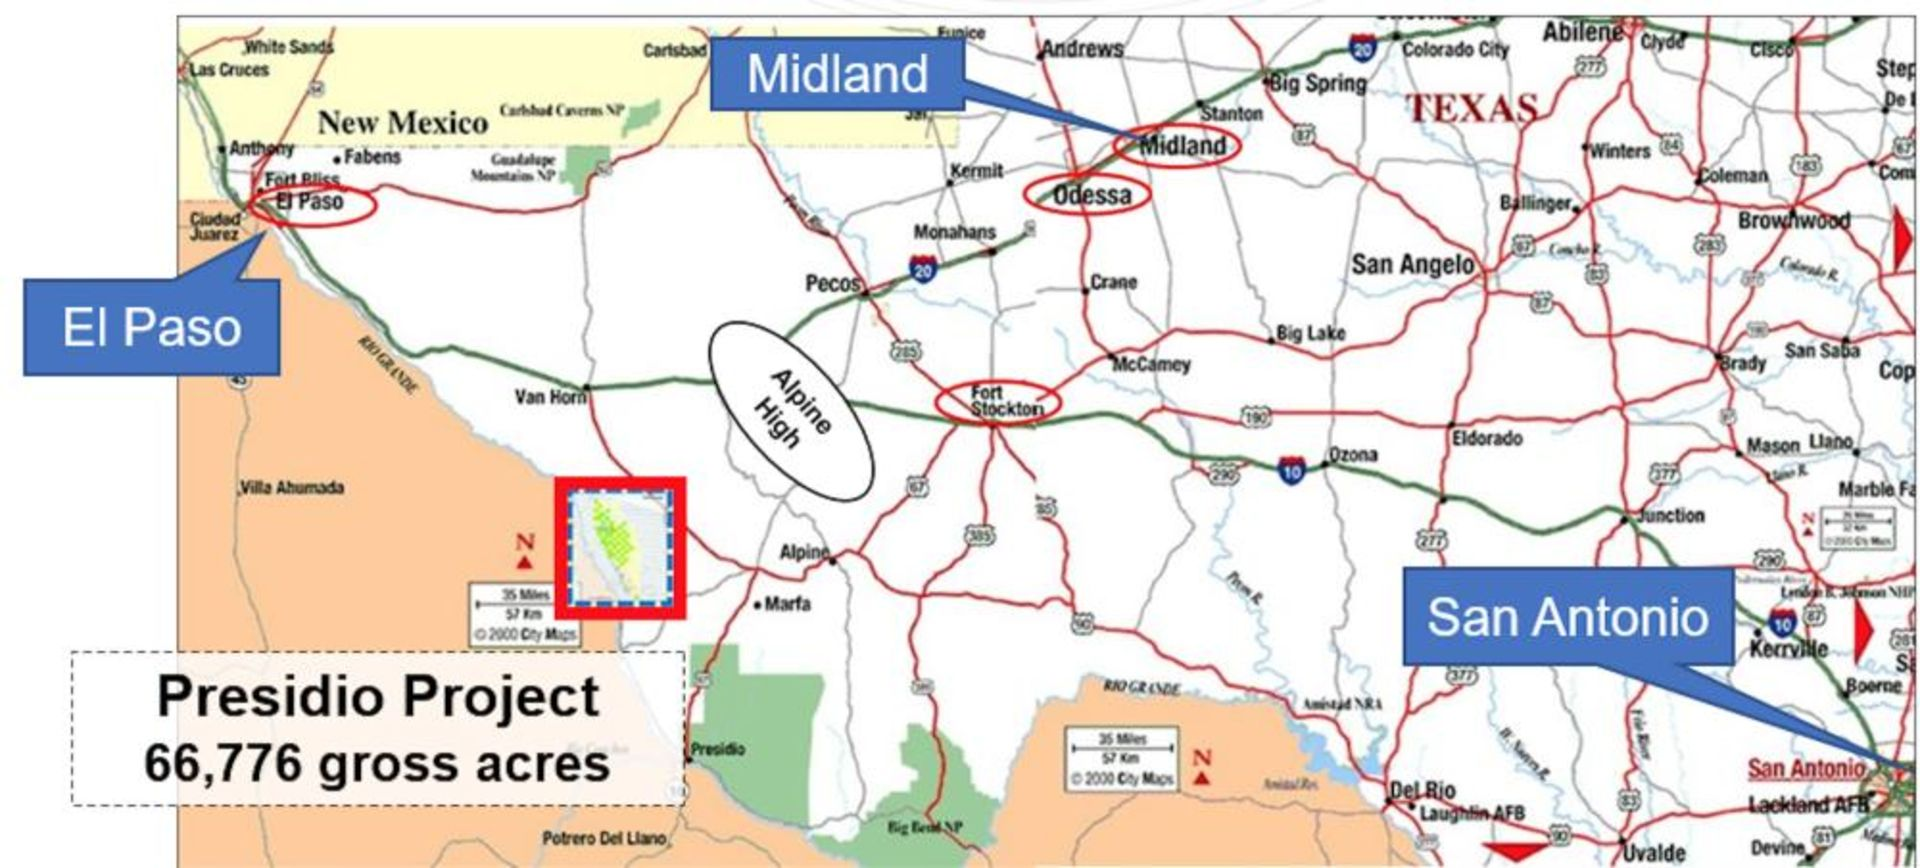 Invest Here—40 Acres in Texas in Oil Country! BIDDING IS PER ACRE - Image 4 of 4